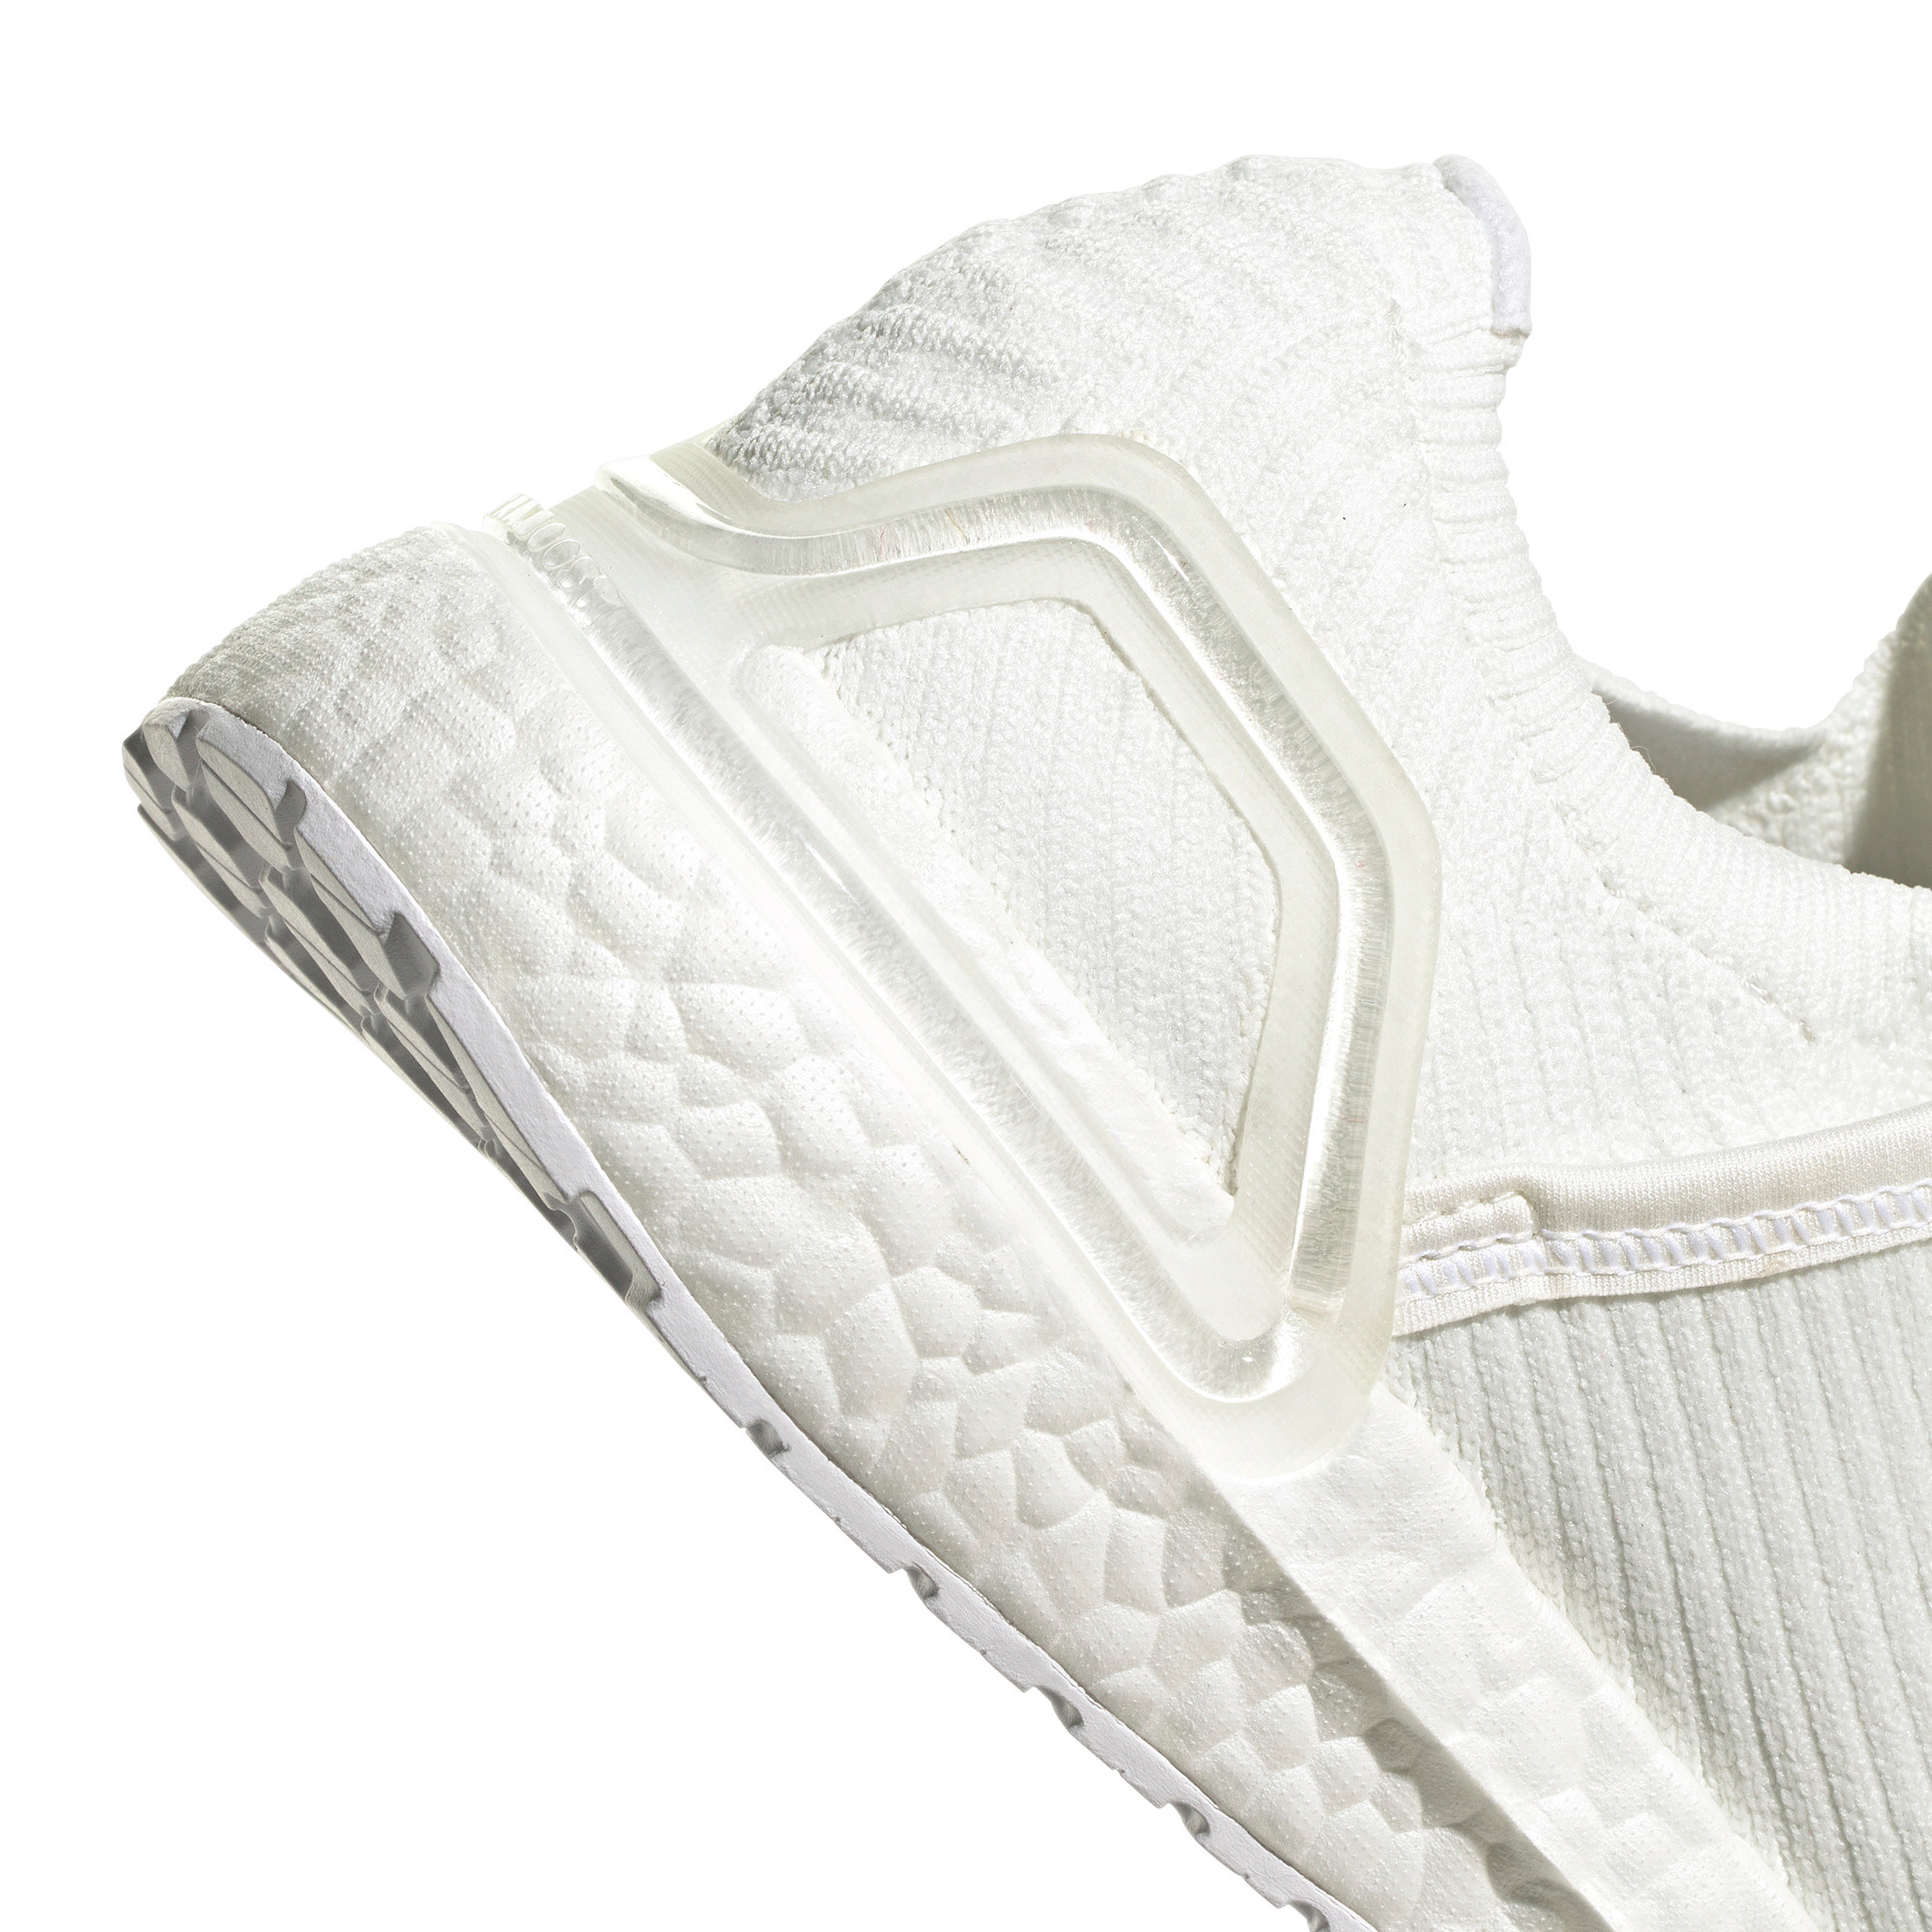 Trainers Ultraboost 20 No Dye Running, Bianco, large image number 4